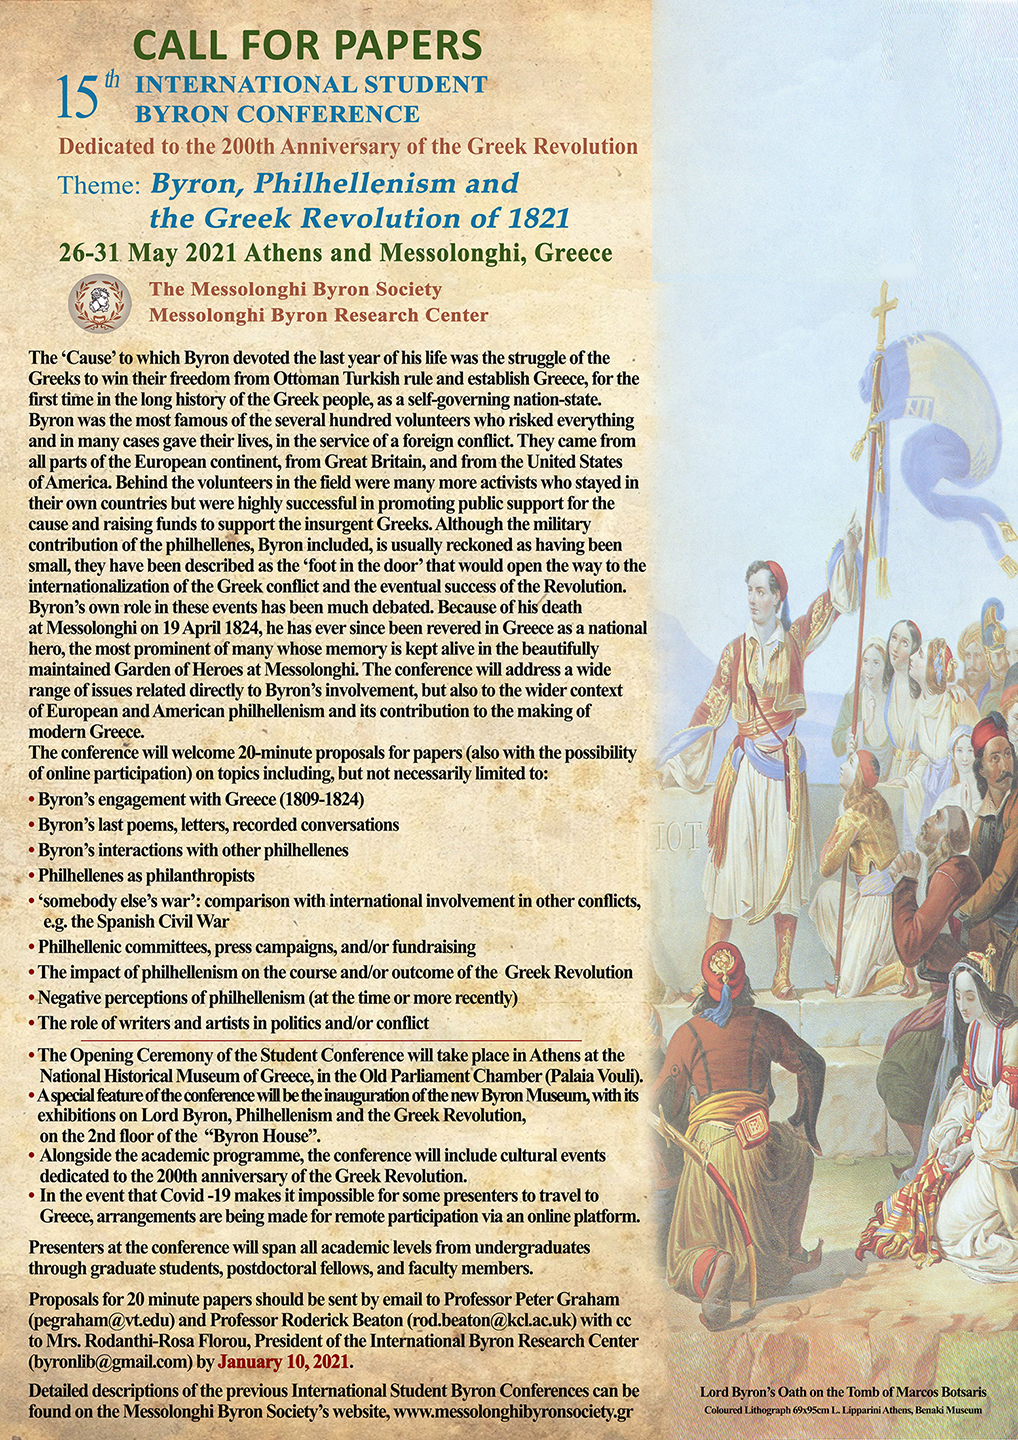 Call for Papers: 15th International Student Byron Conference